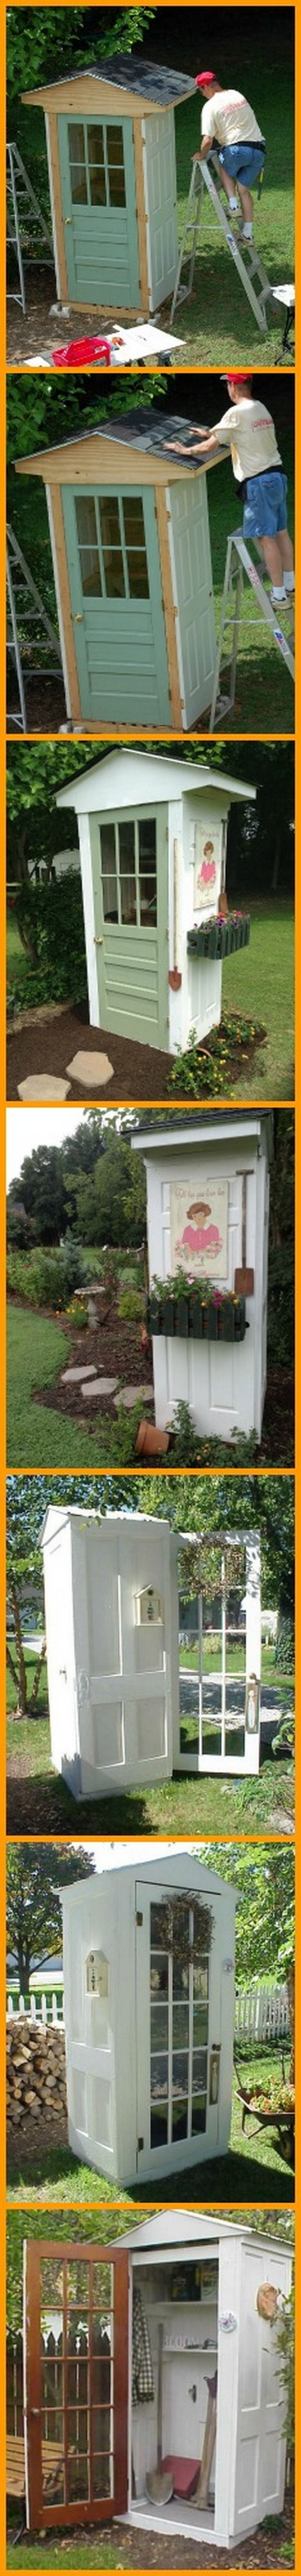 Made from old doors, this shed will look cute in any backyard. Do you want one? http://theownerbuildernetwork.co/5ws9